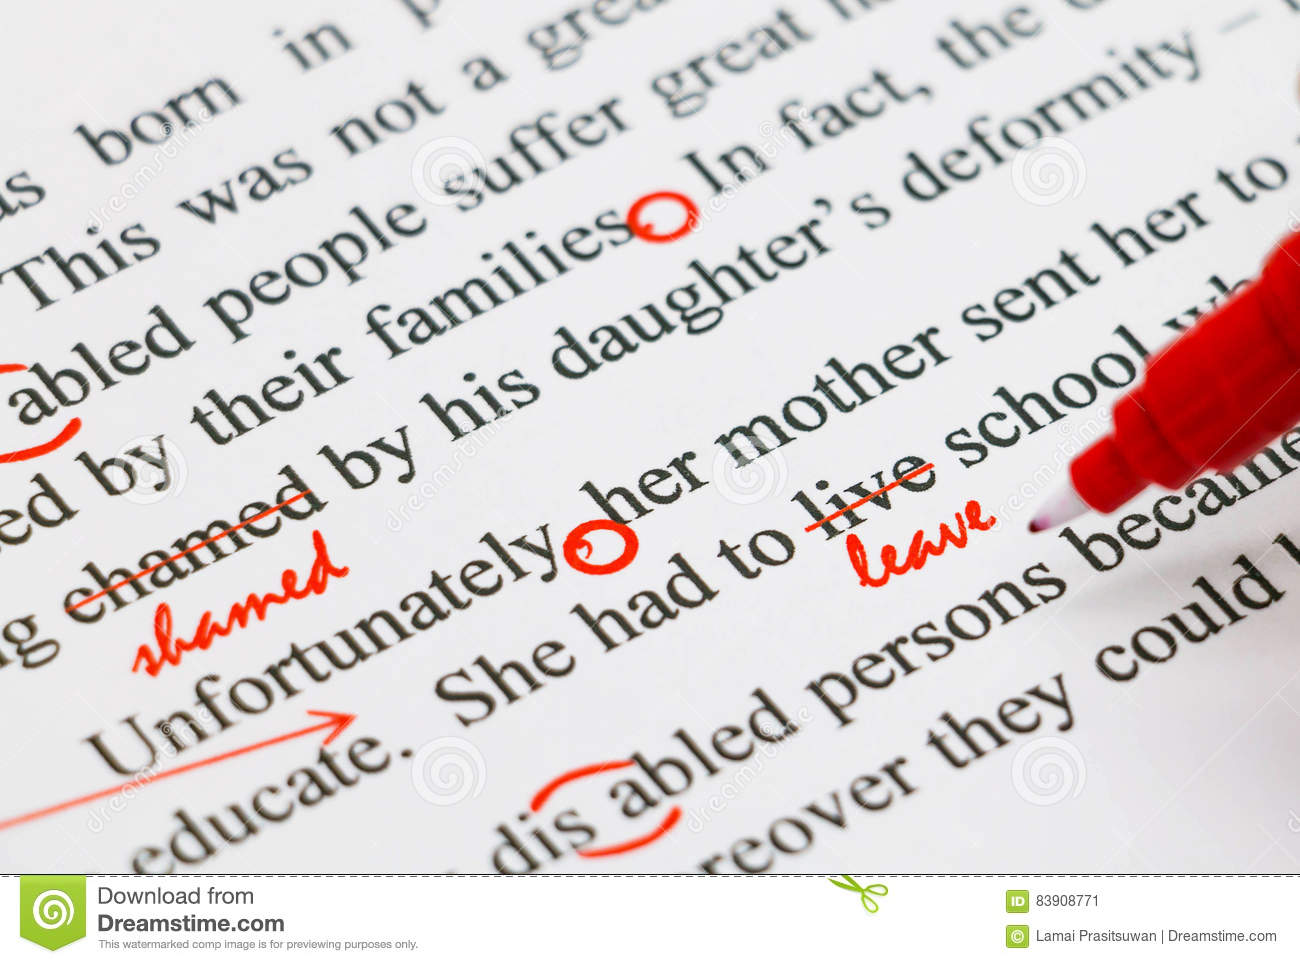 Popular personal essay proofreading website usa popular papers ghostwriter for hire for school